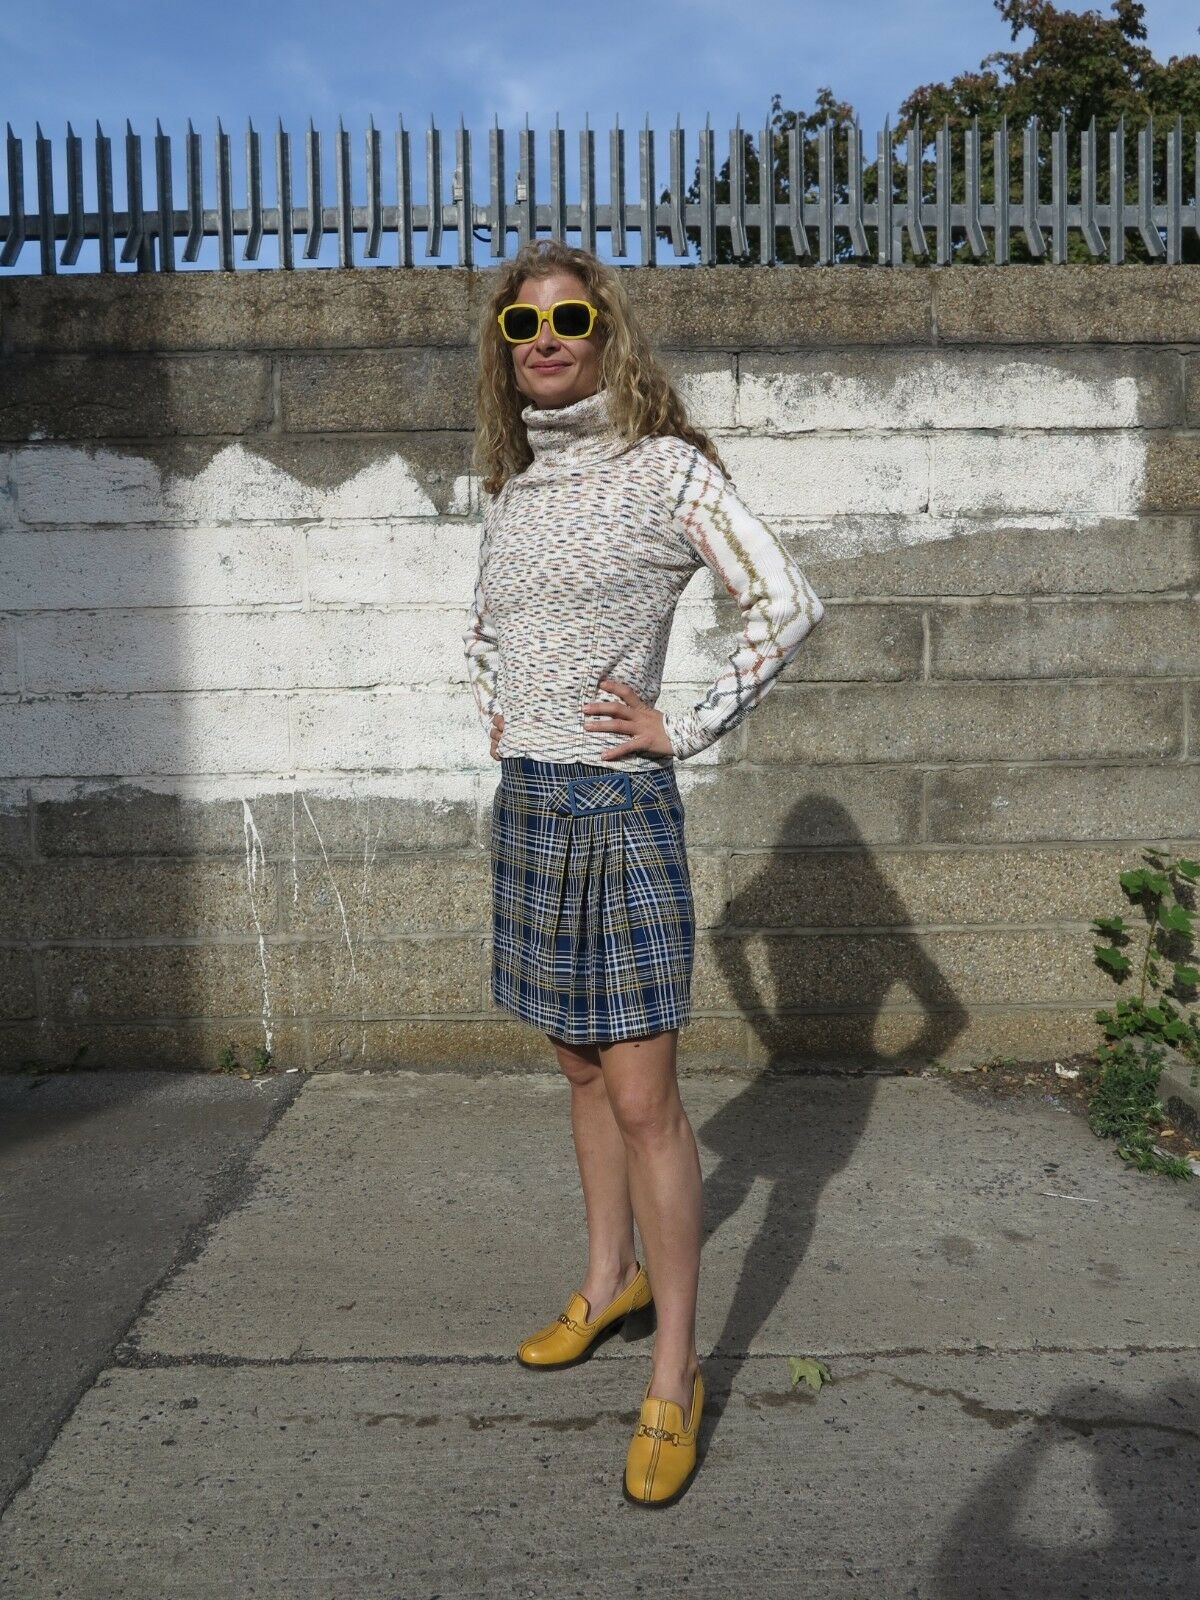 Donna Gonna wollrock rock blu blu blu a quadri 60er True Vintage 60s Wool Skirt checked 7a3662